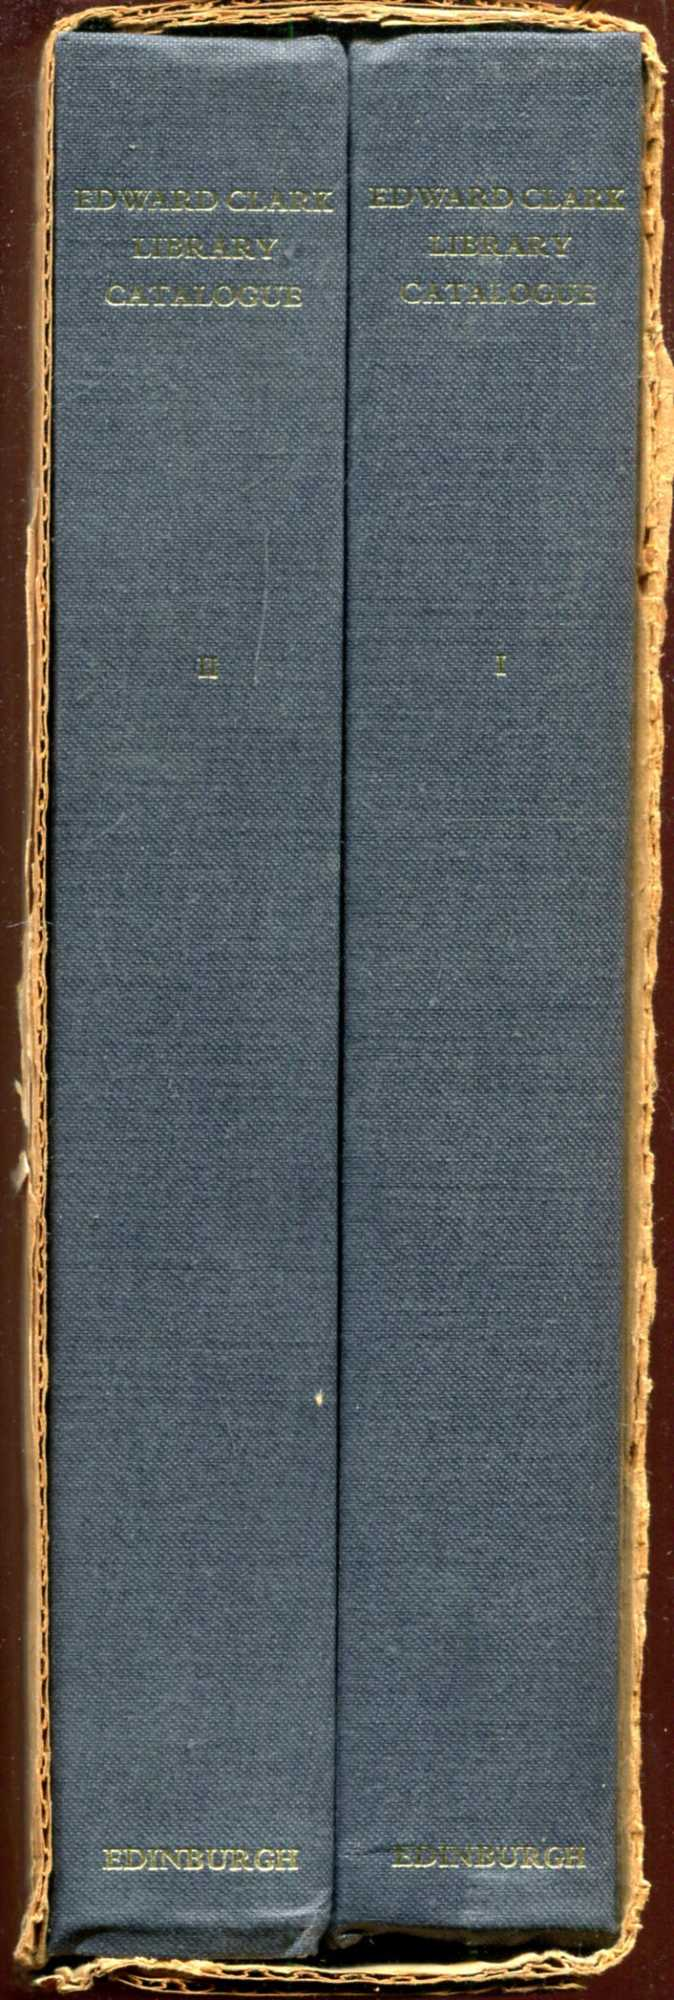 Image for Catalogue of the Edward Clark Library (two volumes complete)